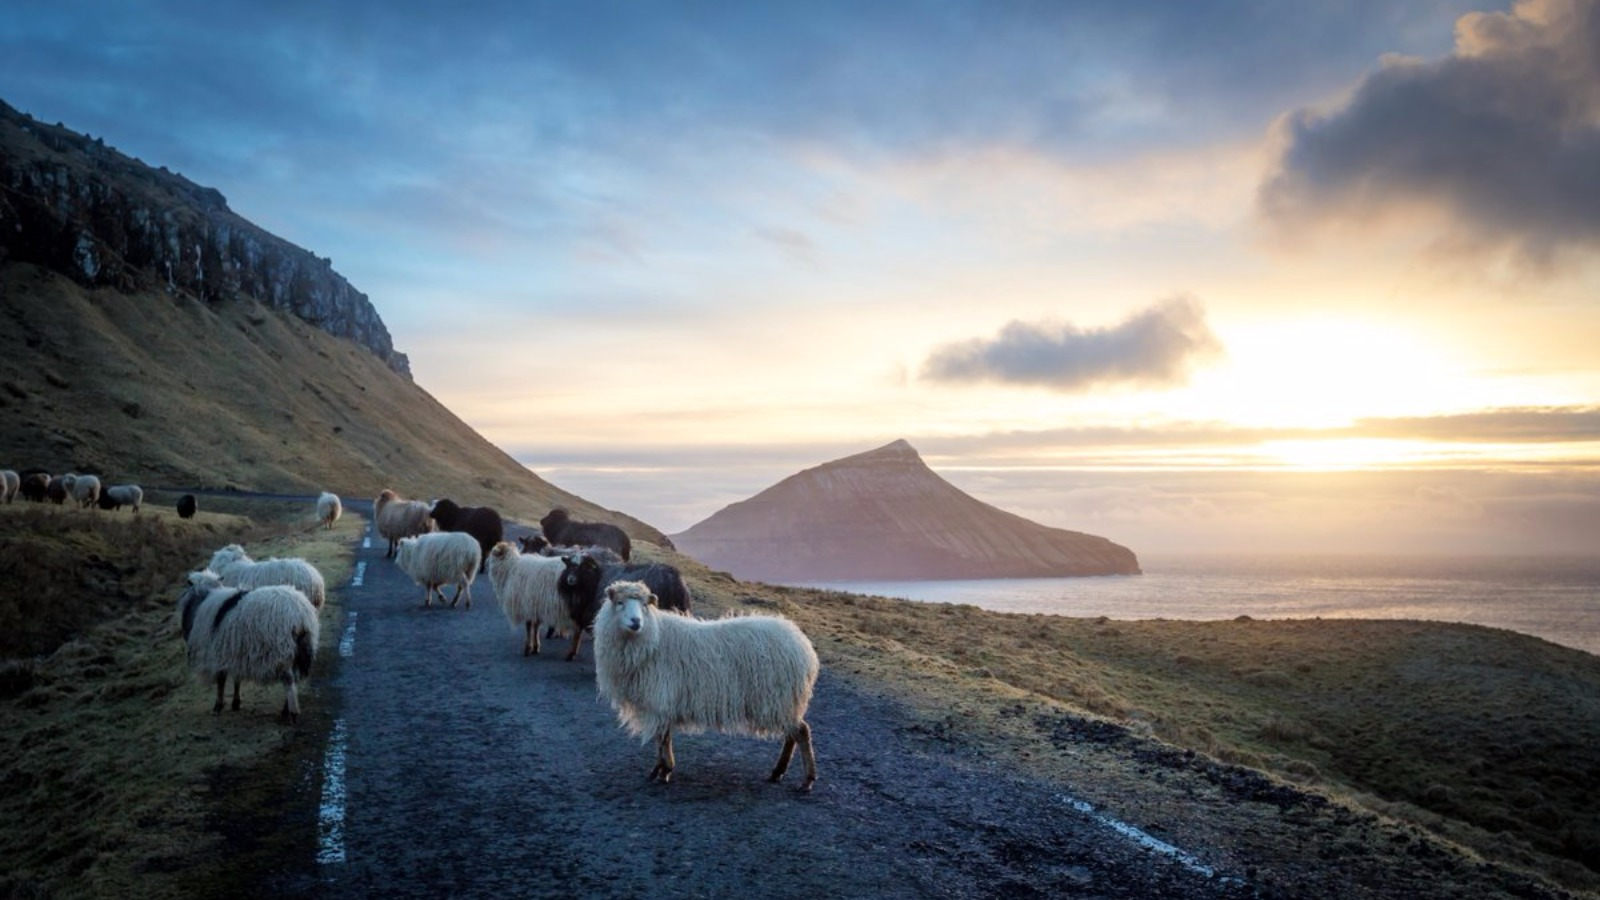 Panoramic Wallpaper Fall Faroe Islands Use Sheep Cameras To Create Google Street